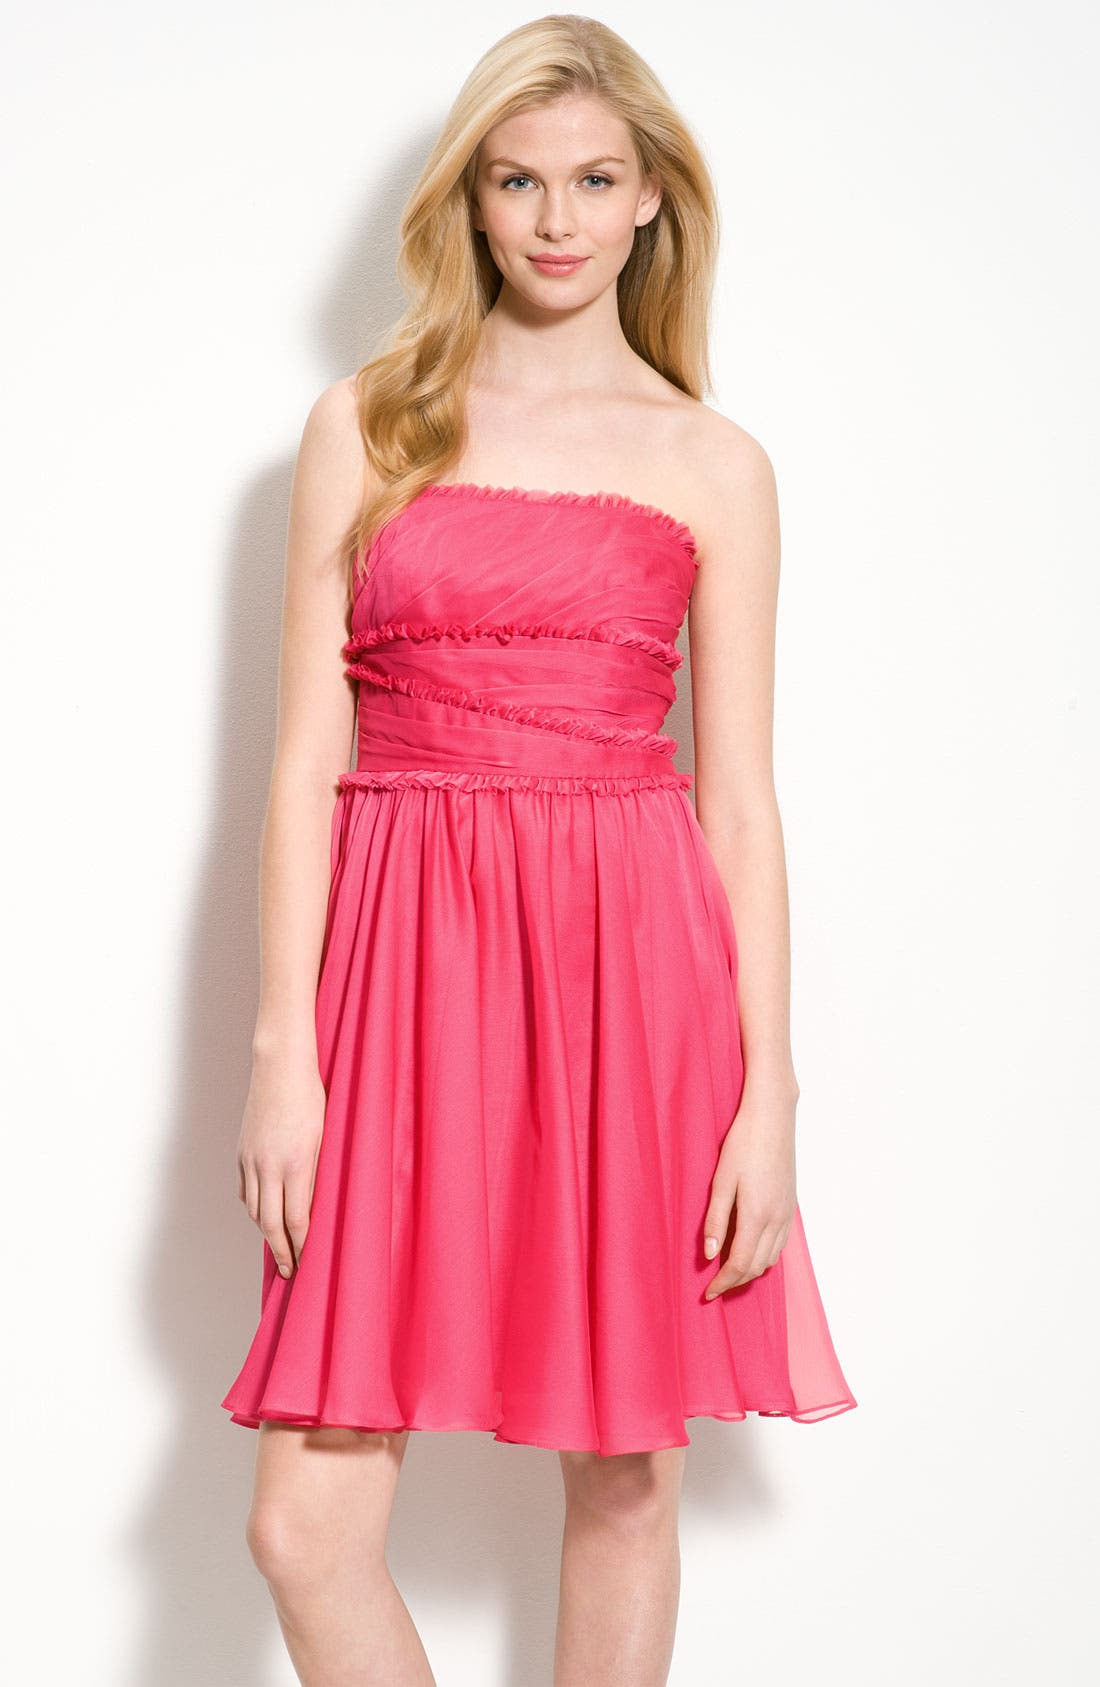 Alternate Image 1 Selected - ML Monique Lhuillier Bridesmaids Ruffle Chiffon Dress (Nordstrom Exclusive)